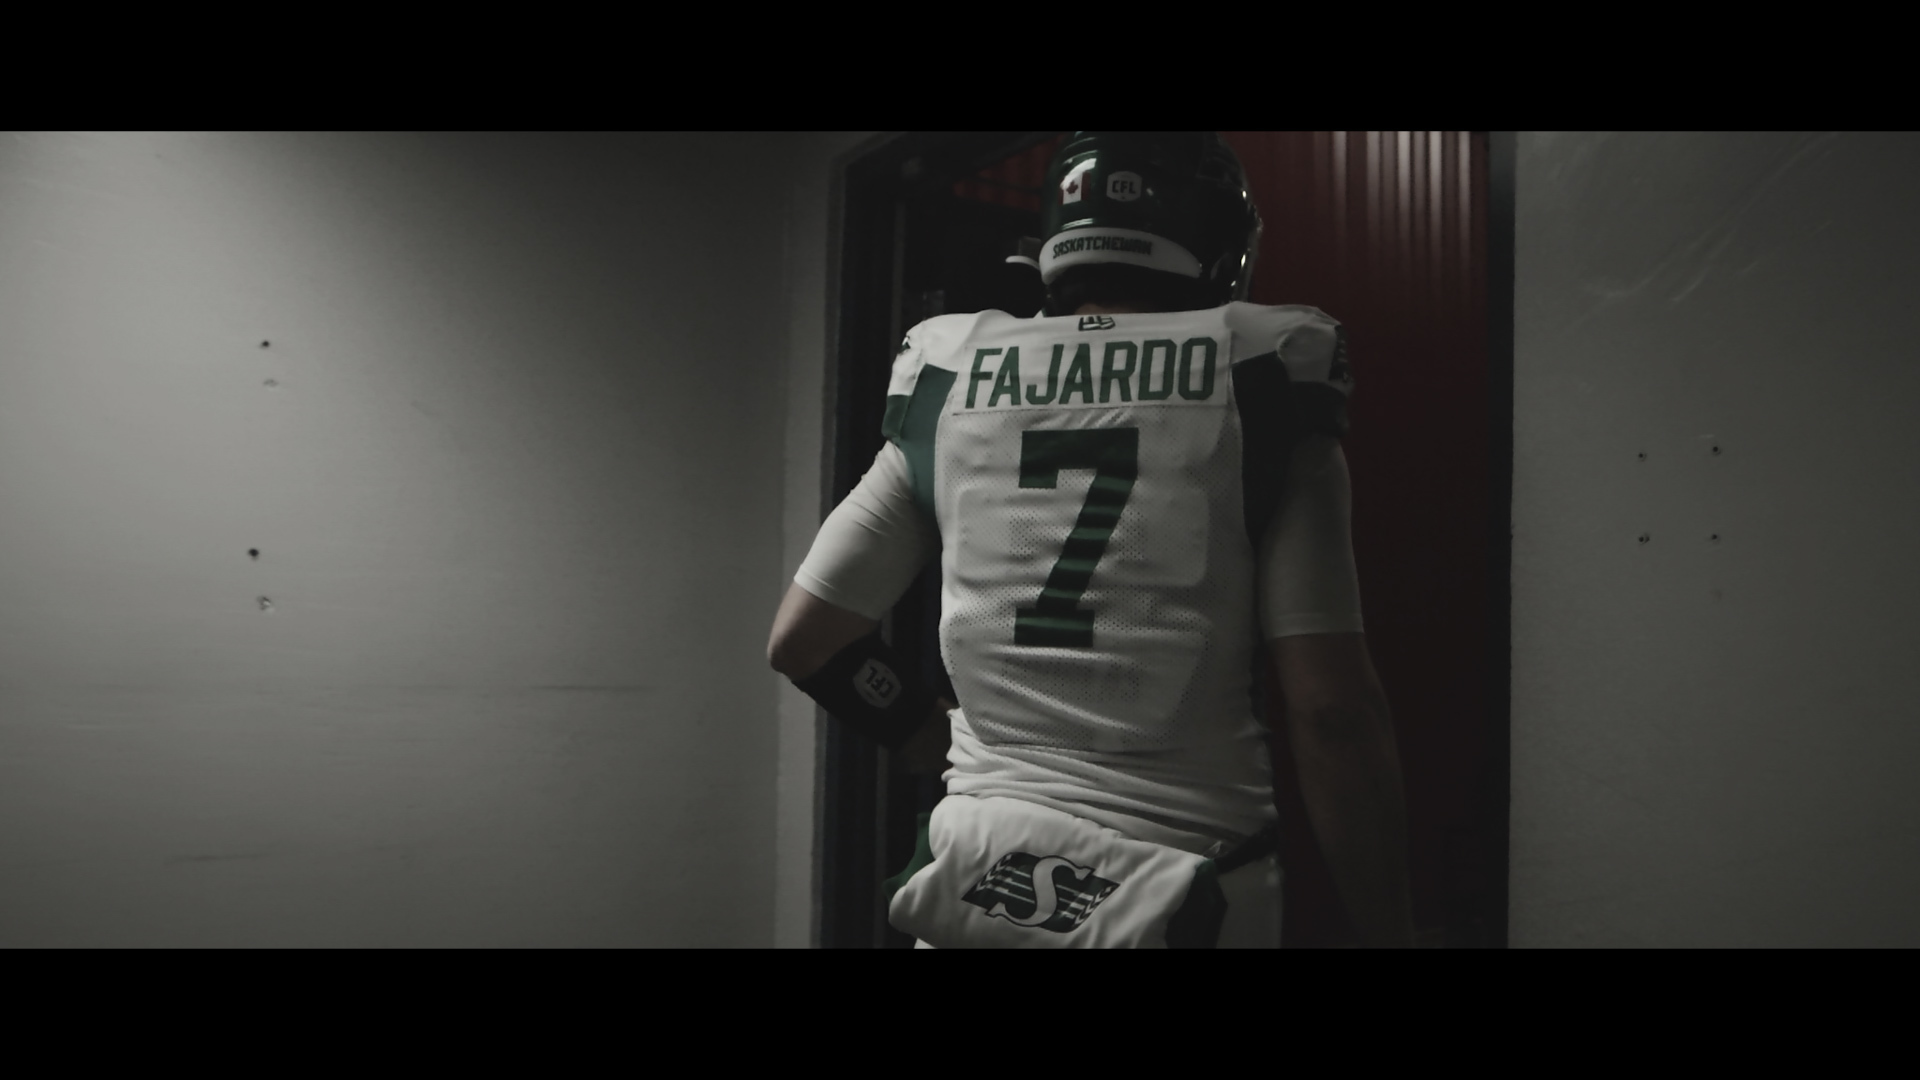 Week 9 Trailer | Bring Our 'A' Game